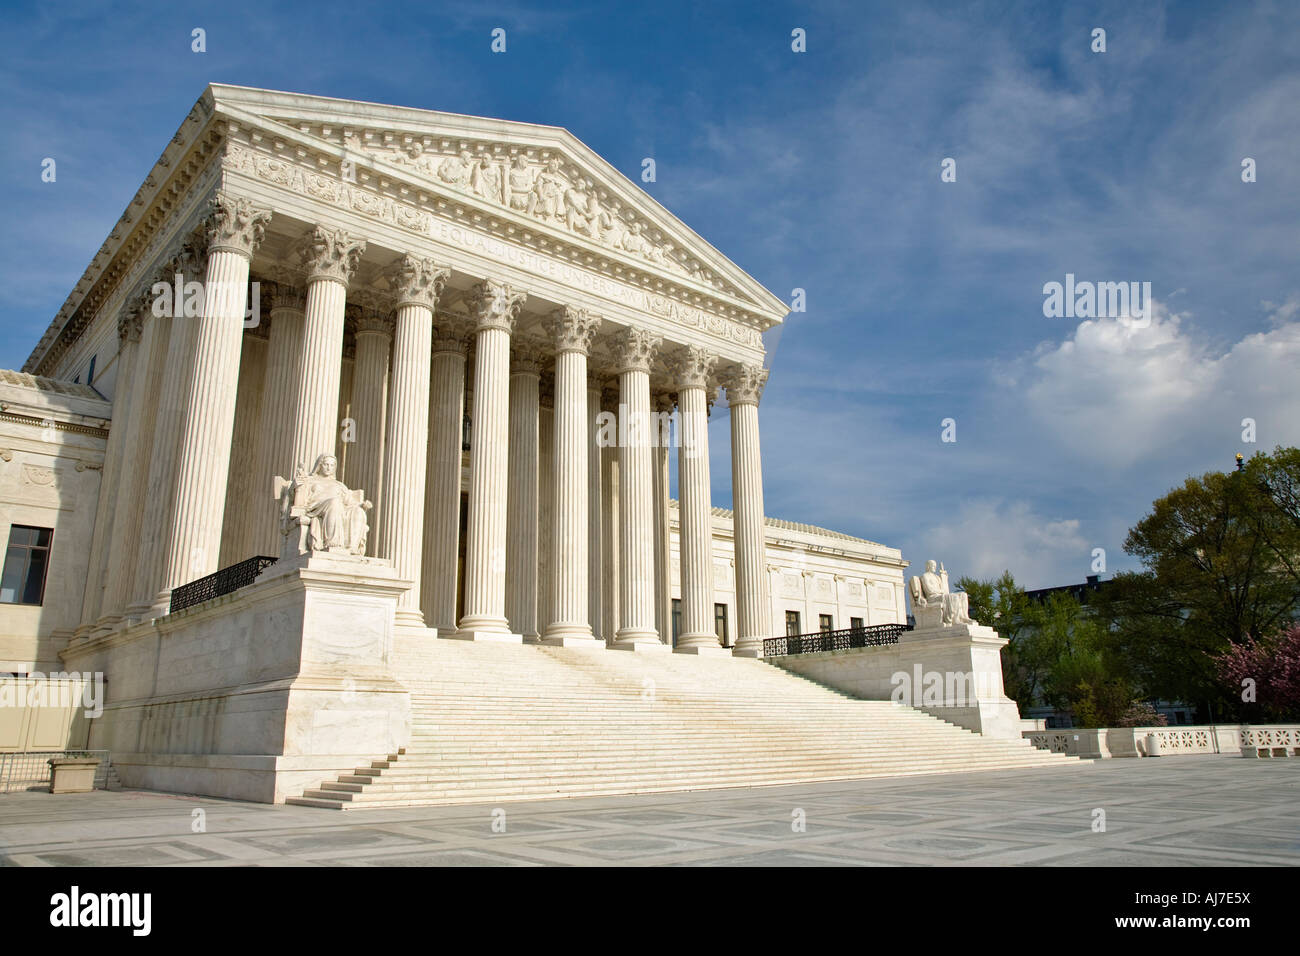 The United States Supreme Court Building was designed in a classical Corinthian architectural style, Washington - Stock Image